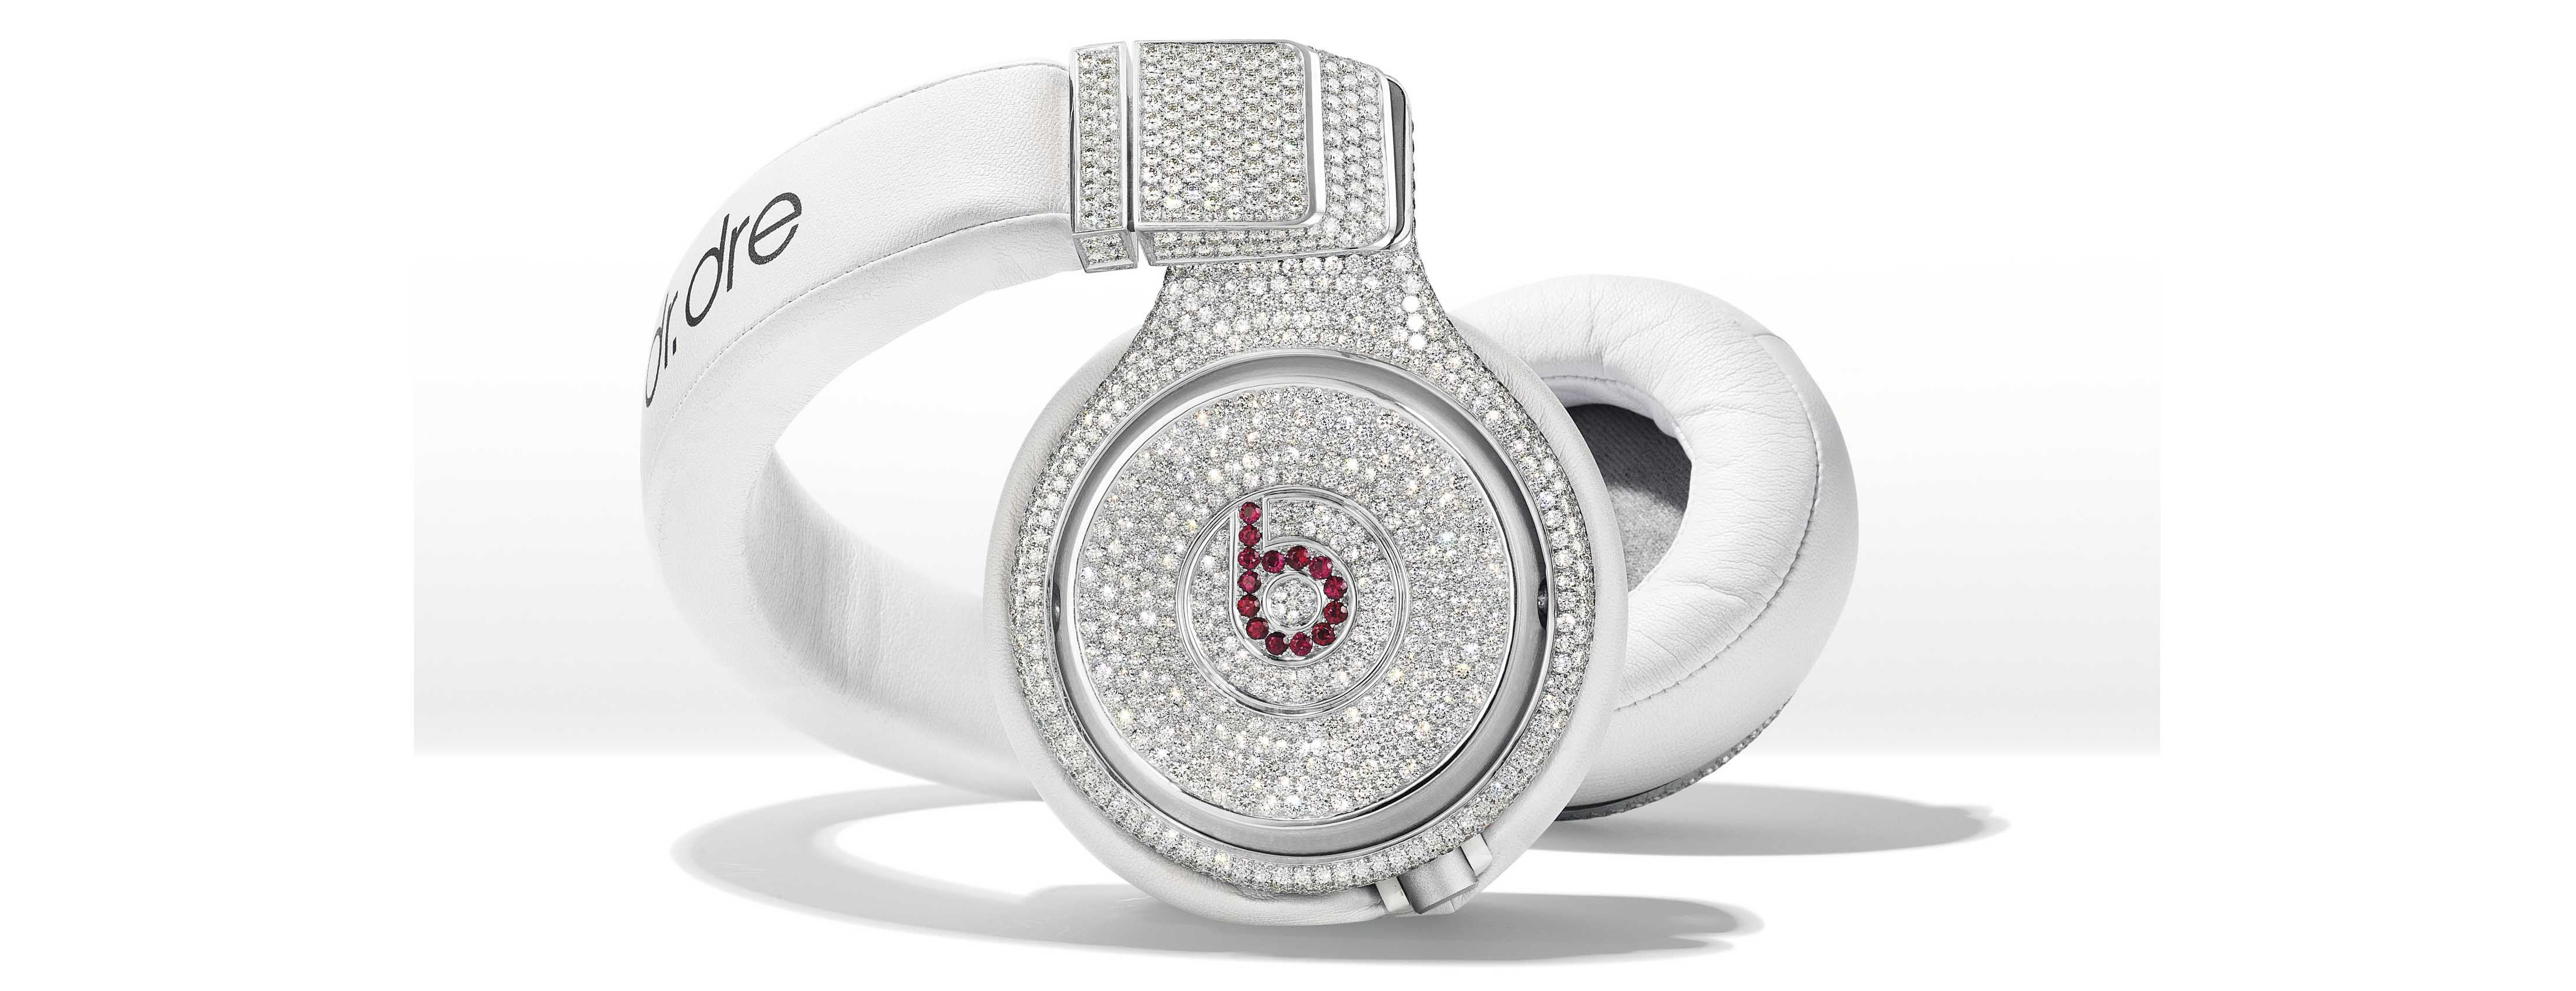 DIAMOND AND RUBY 'BEATS PRO' HEADPHONES, GRAFF-art-b